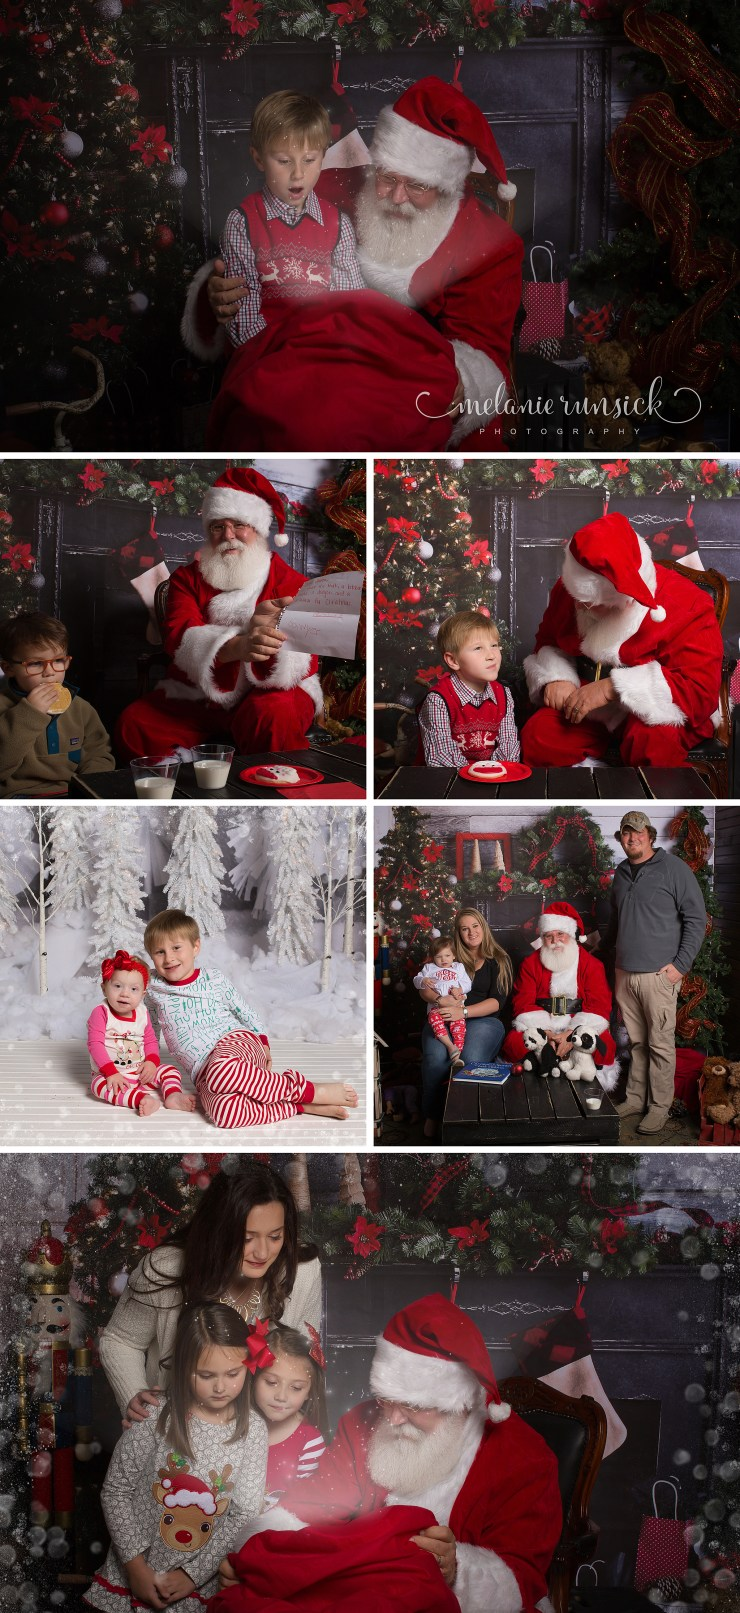 Jonesboro AR cookies with Santa Christmas session Melanie Runsick Photography Winter White Christmas Minis